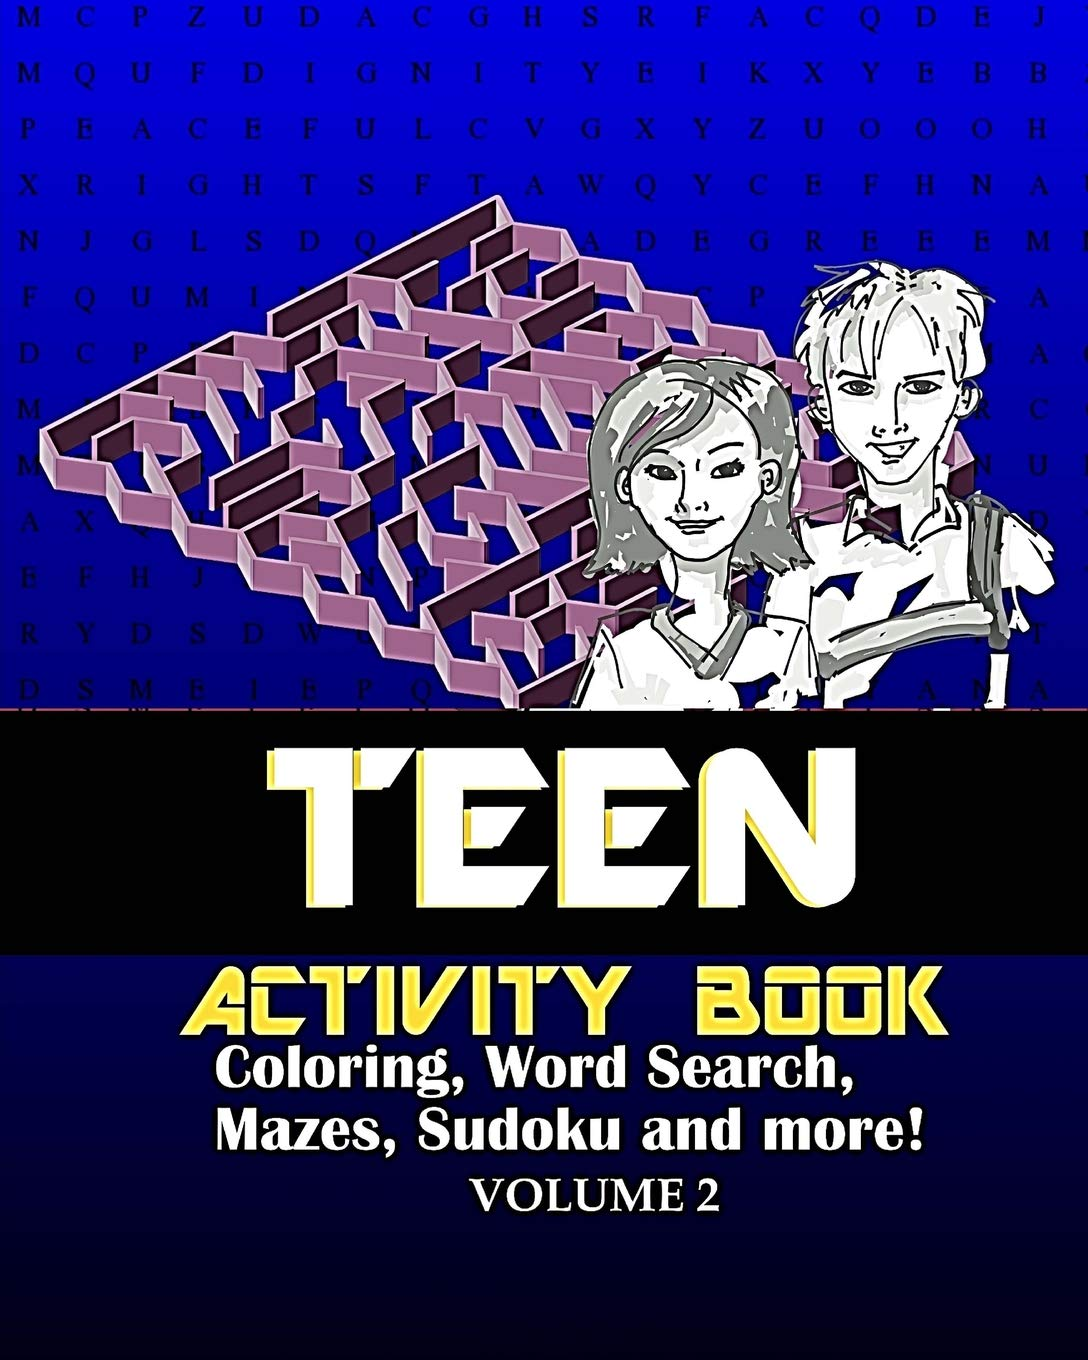 Teen Activity Book Volume Two: Coloring, Word Search, Mazes, Sudoku and more! ebook